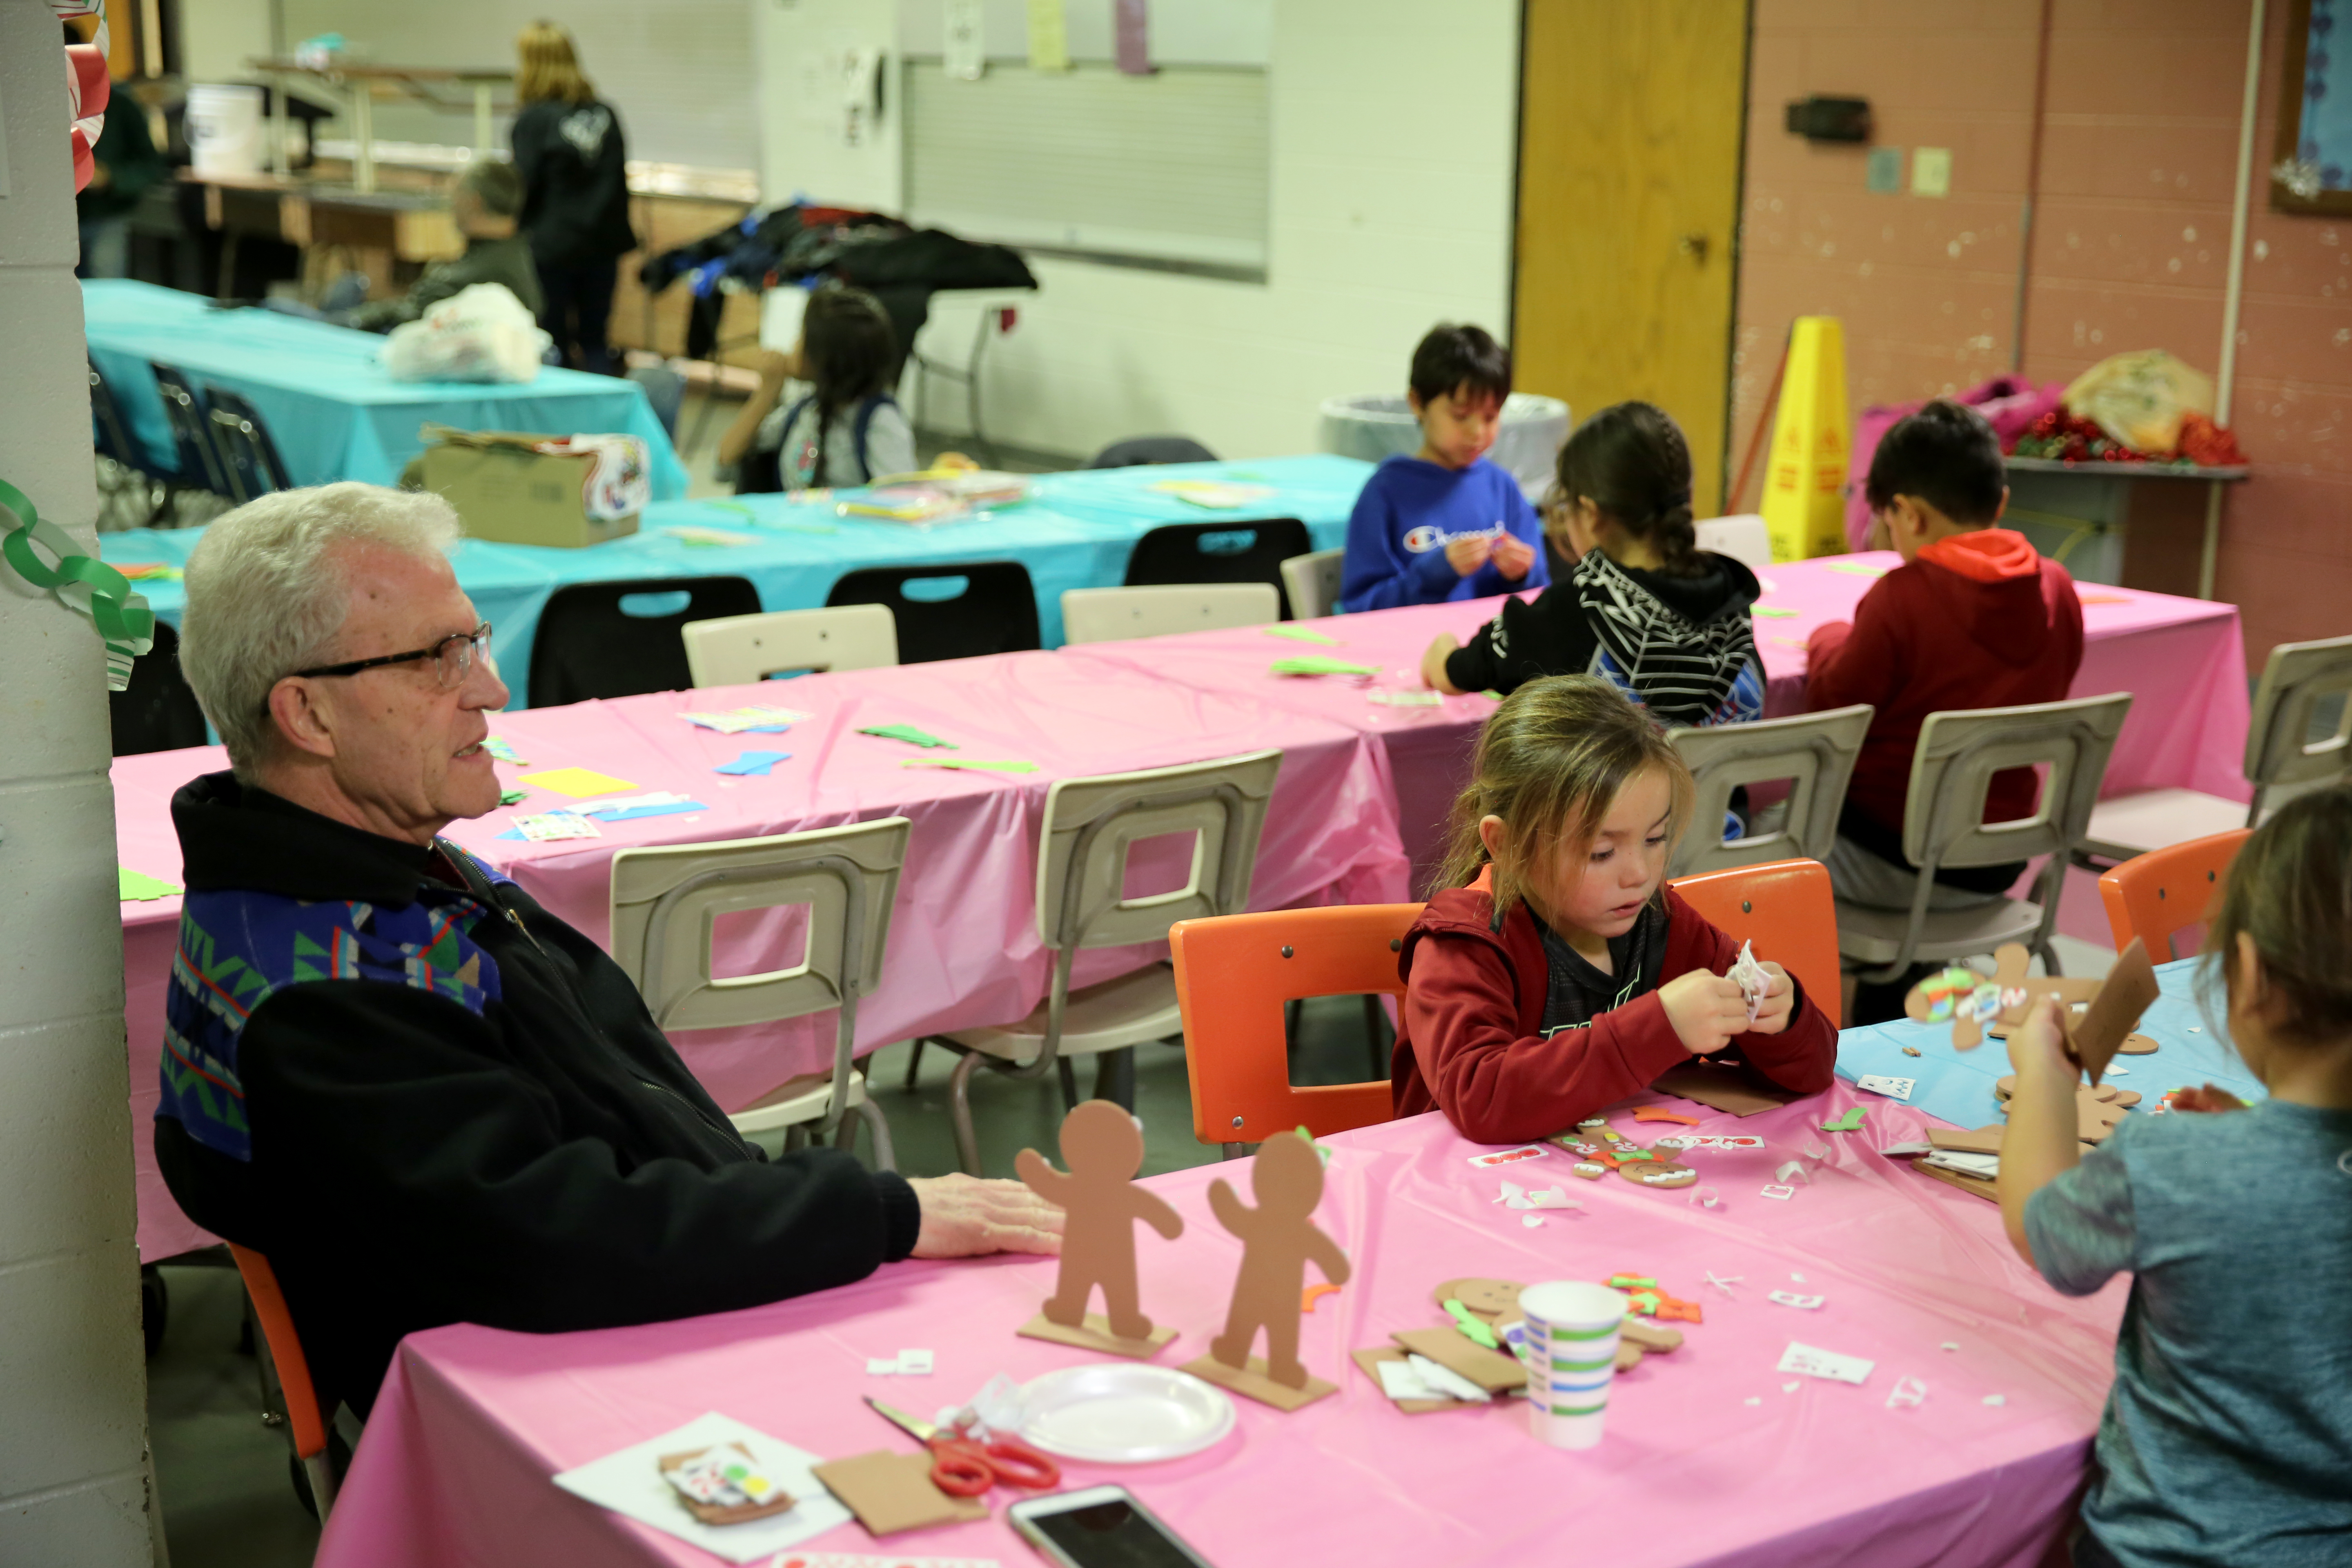 Fr. Klink and students on craft night